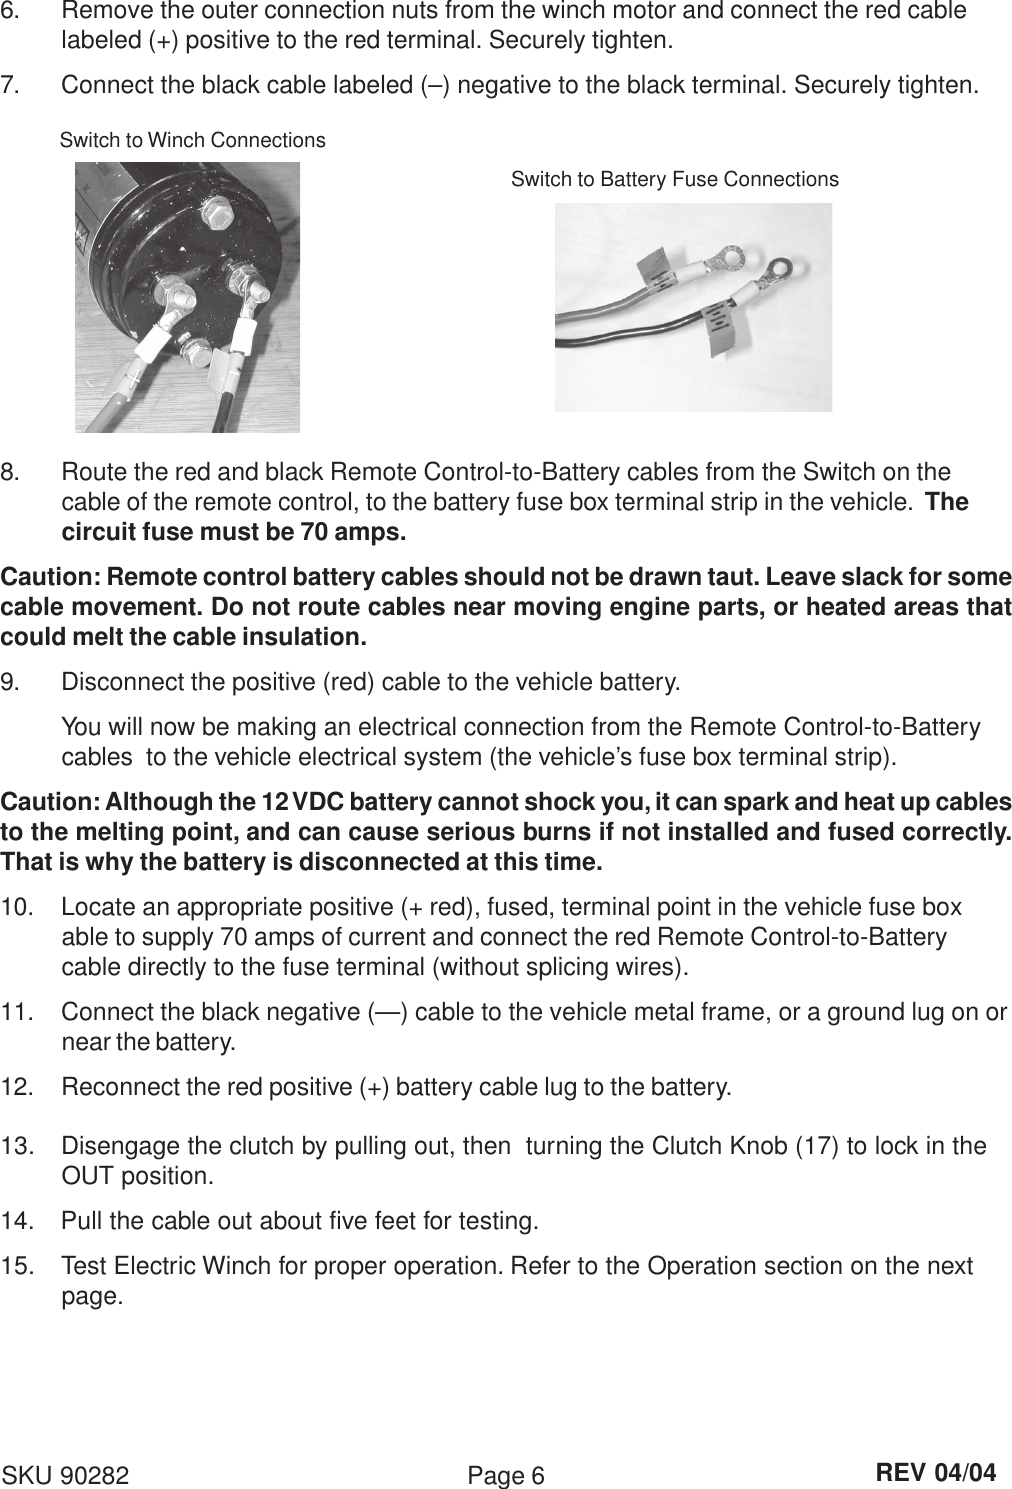 Chicago Electric 90282 Users Manual Winch Wiring Diagram Page 6 Of 9